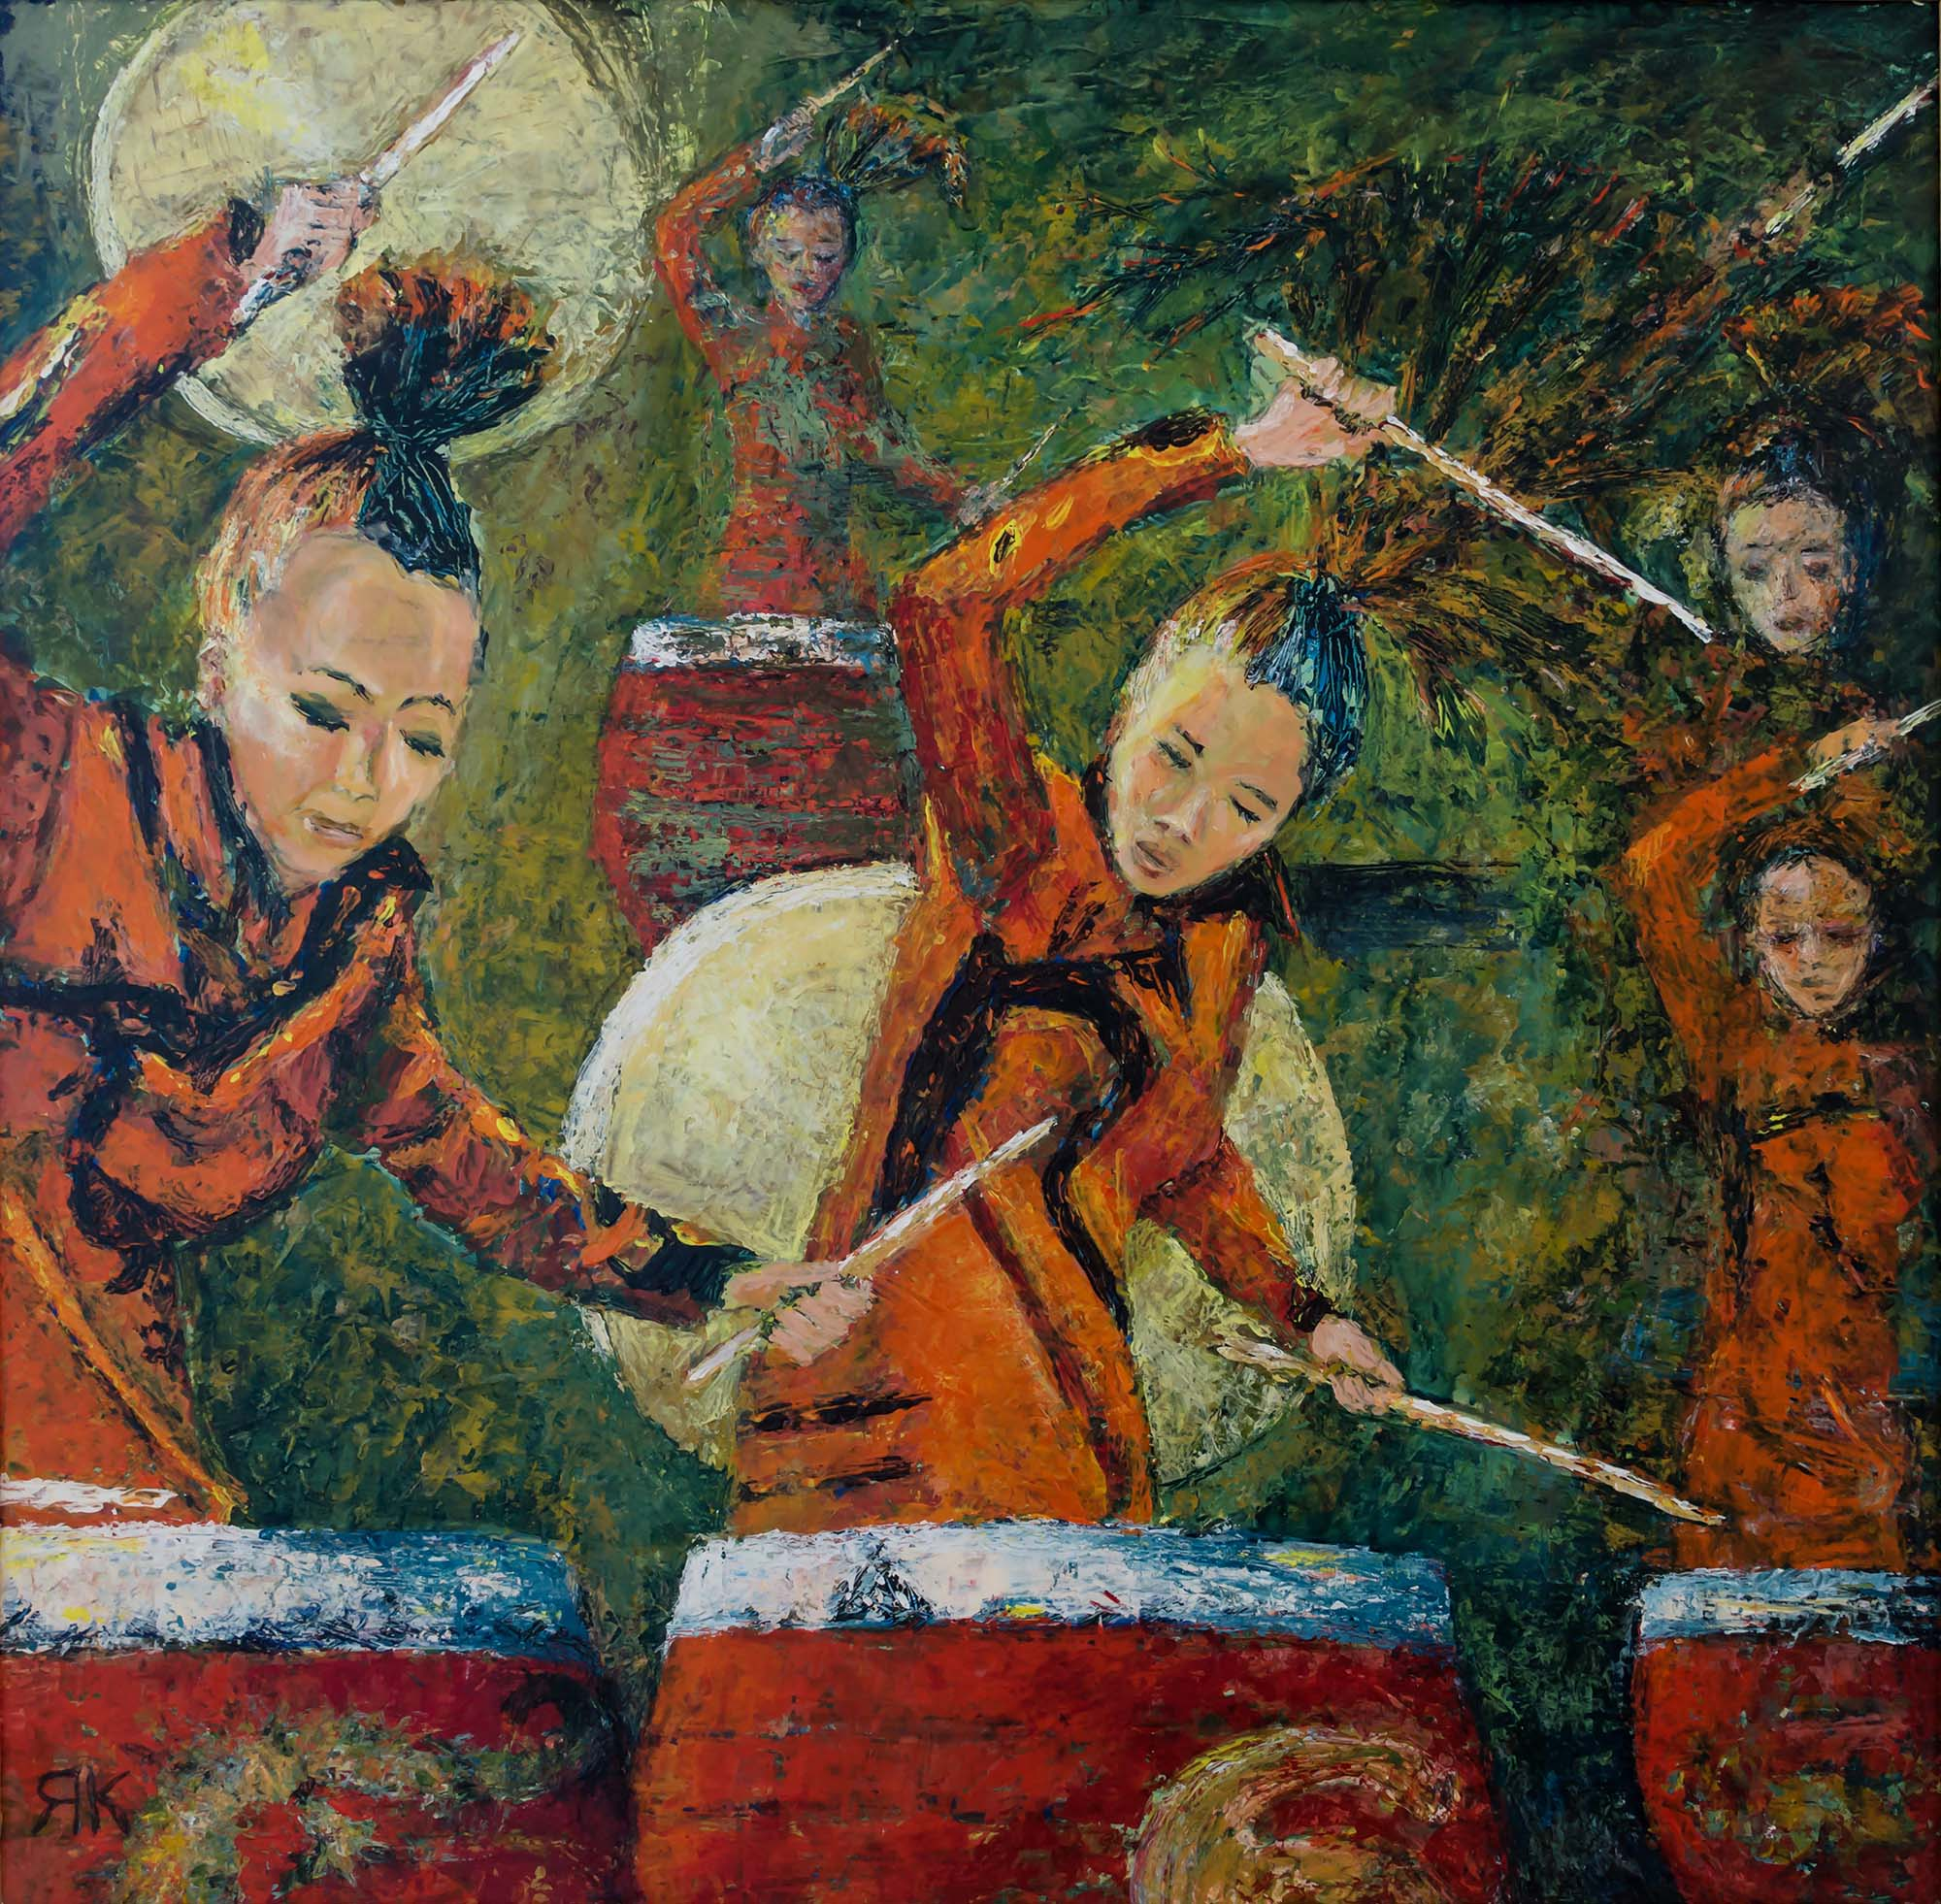 Chinese women playing manoa drums by Ria Kieboom